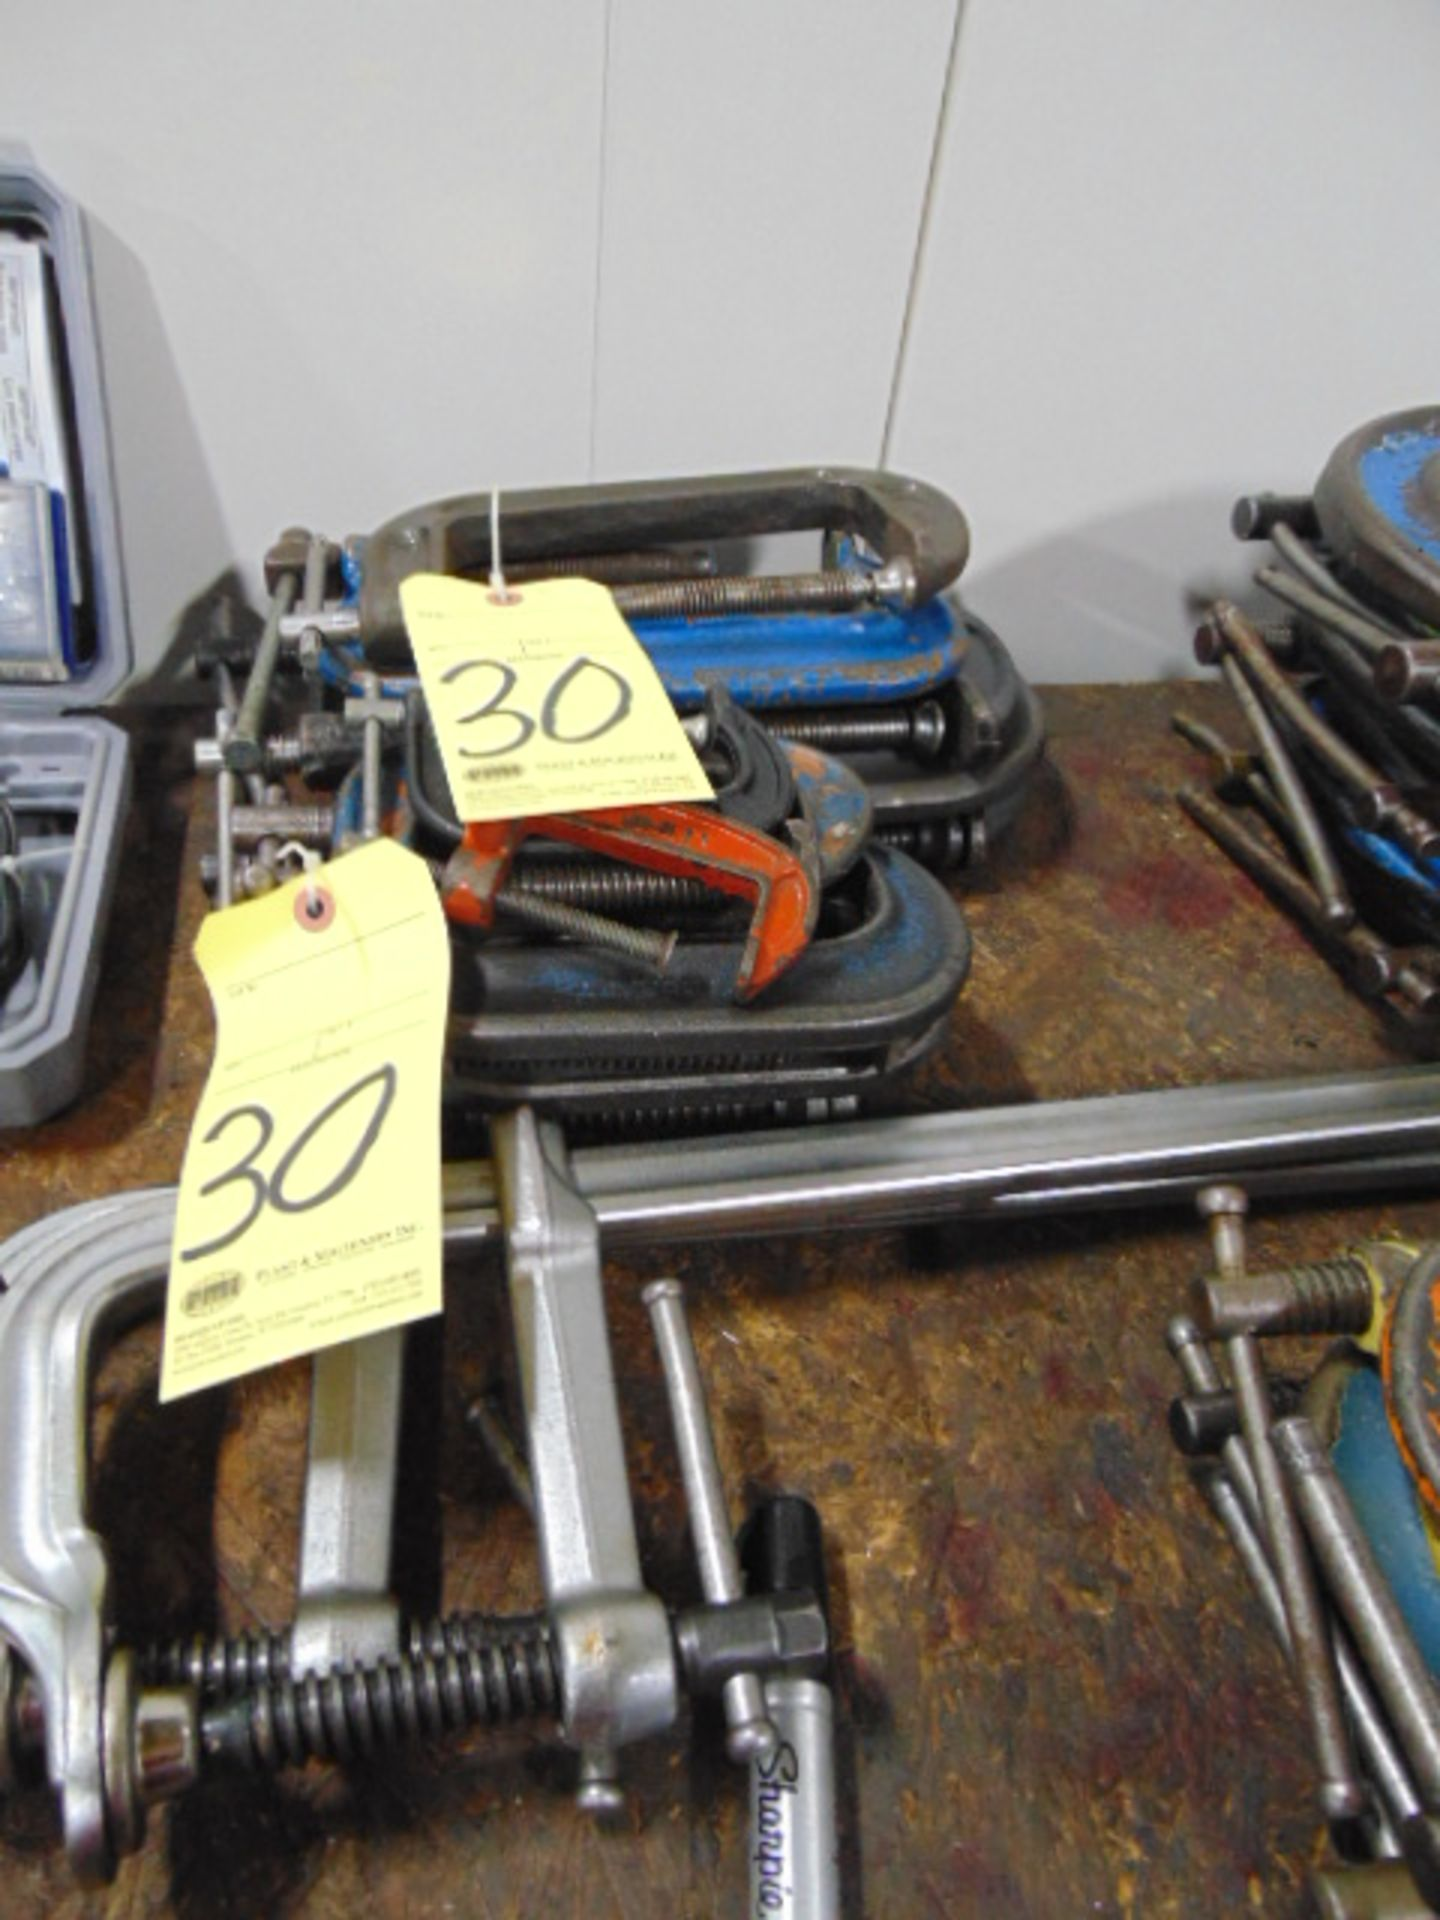 Lot 30 - LOT CONSISTING OF: c-clamps & bar clamps